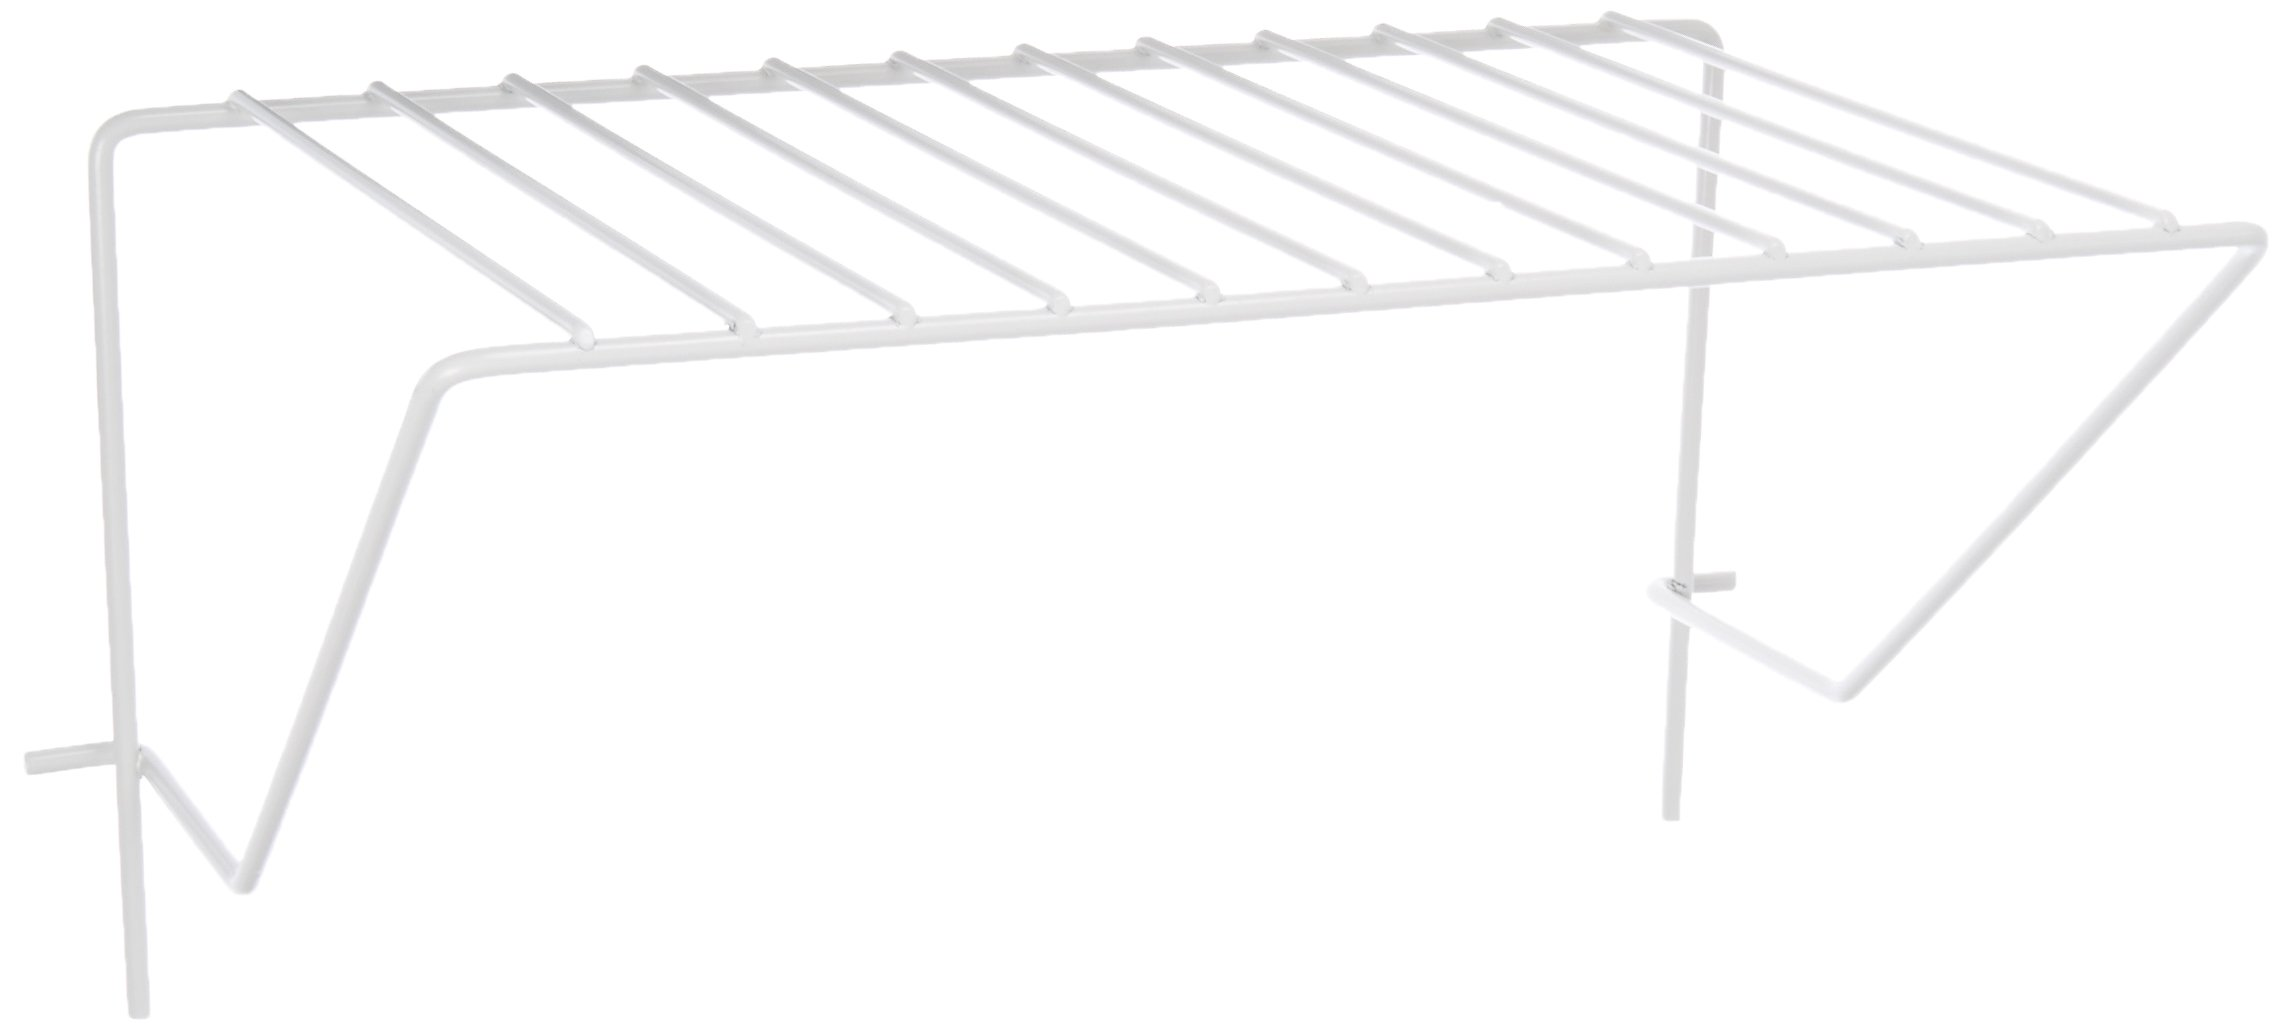 Labconco 7426400 Support Shelves for Freeze Dry System